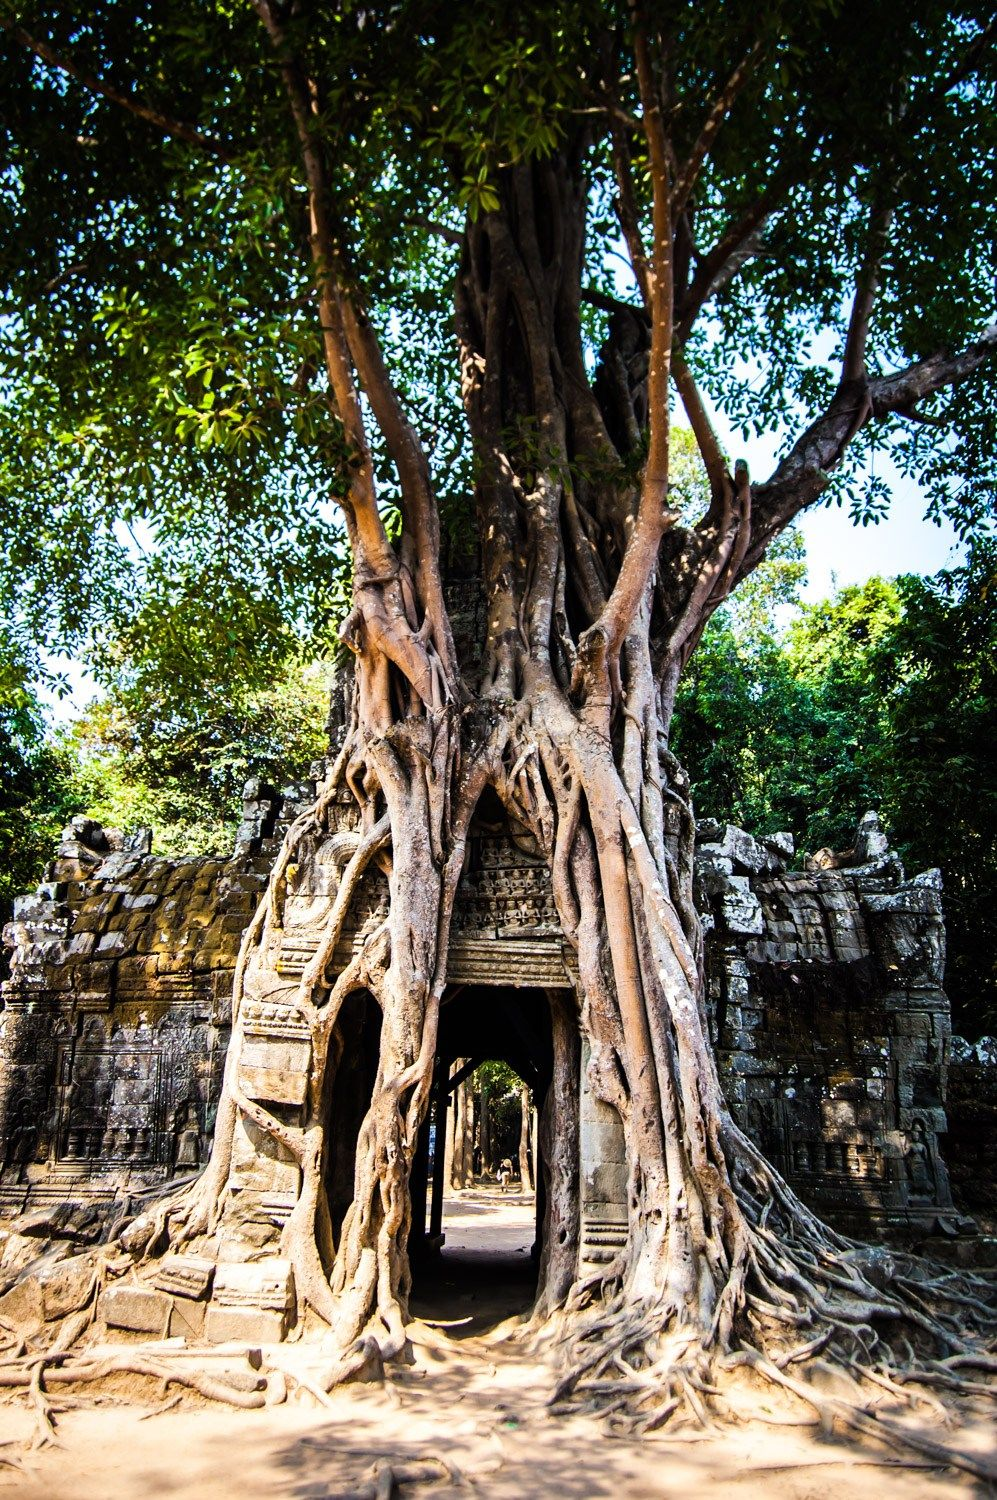 A great guide to must-see temples at Angkor in Cambodia!